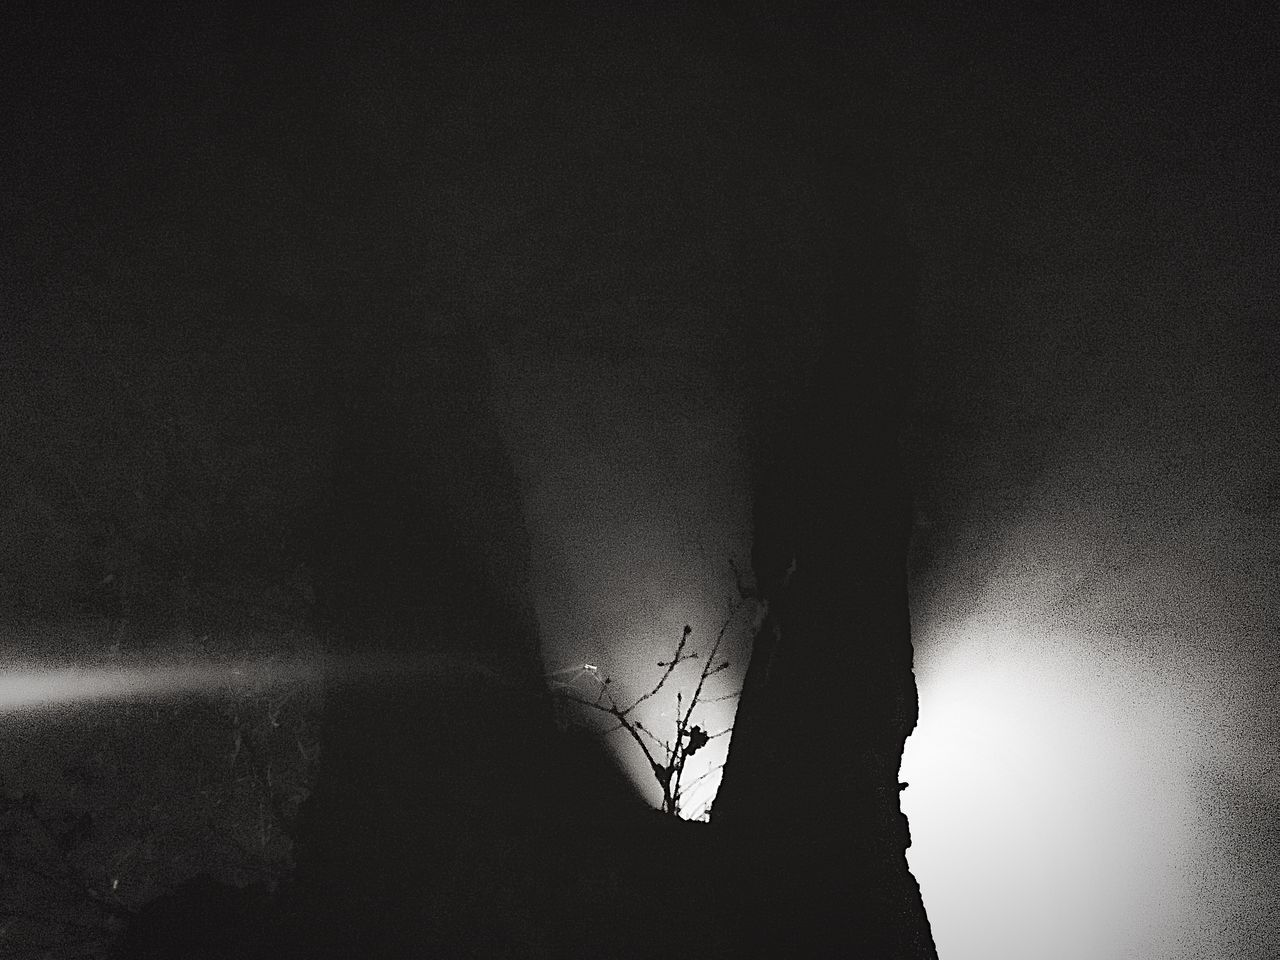 silhouette, nature, one person, indoors, night, water, sky, people